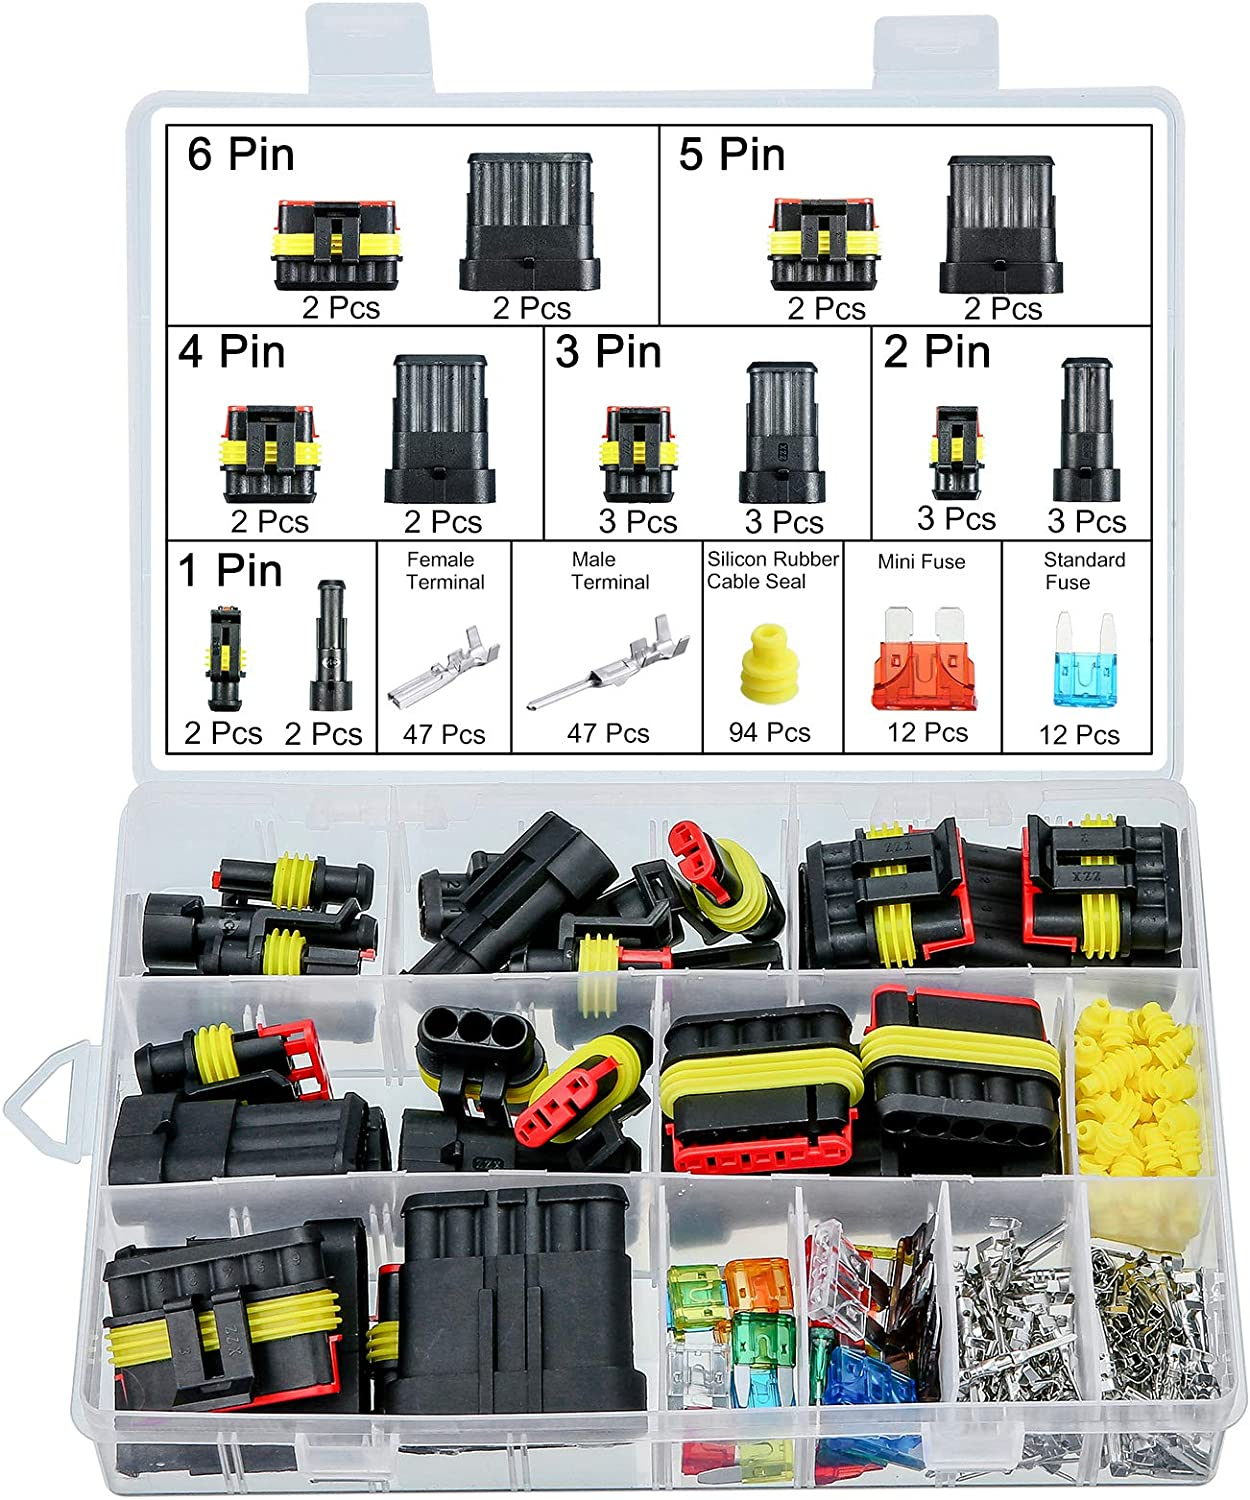 MGGi 240Pcs Waterproof Car Motorcycle Auto Electrical Wire Connector Plug Kit Terminal Assortment 1 2 3 4 5 6 Pin Way with 5-30 Blade Fuses Assortment Kit for Car Truck Boat Motorcycle